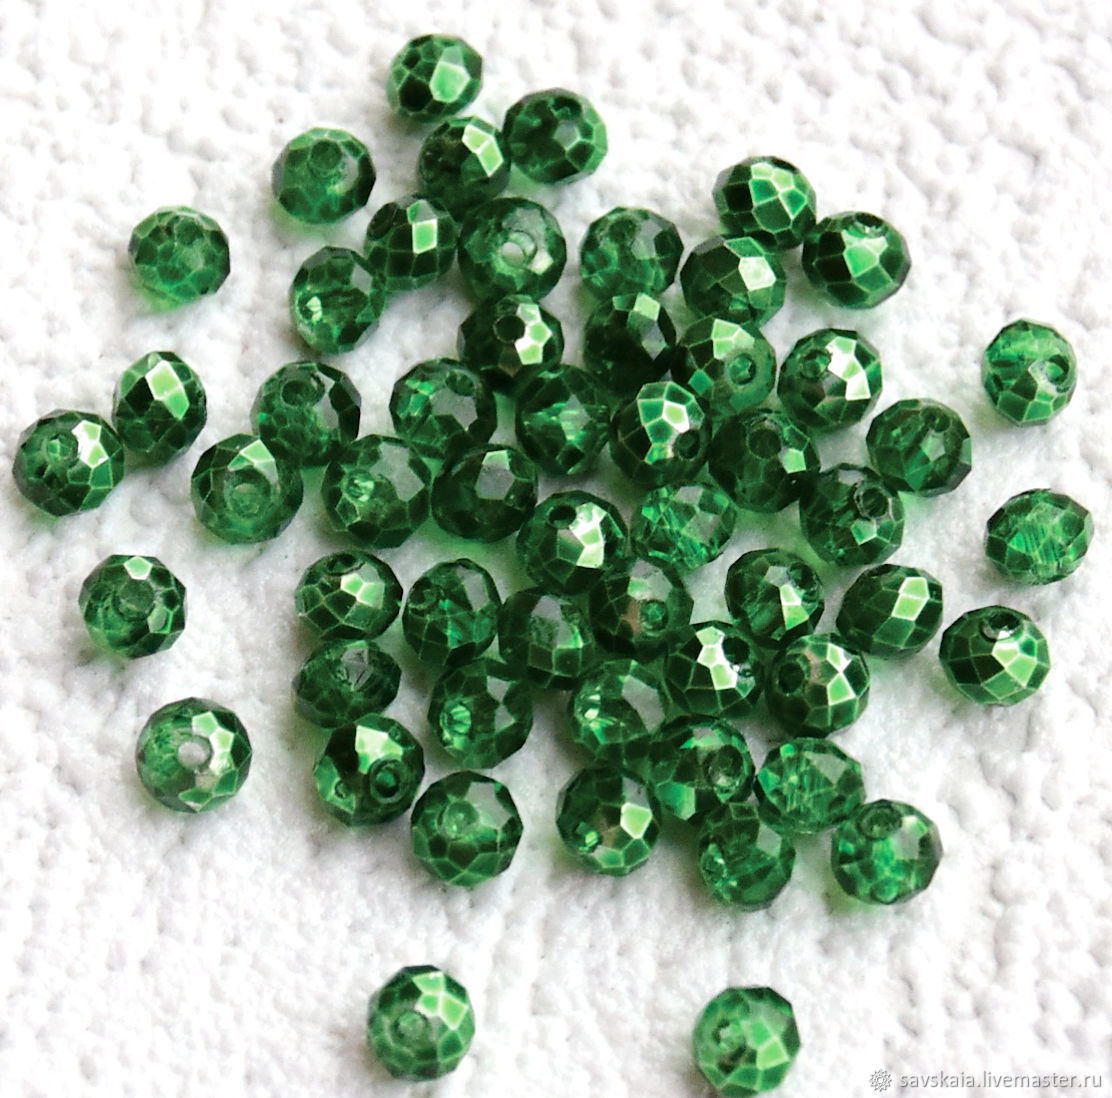 Crystal beads, bright green, transparent, 4h3 mm, Beads1, St. Petersburg,  Фото №1